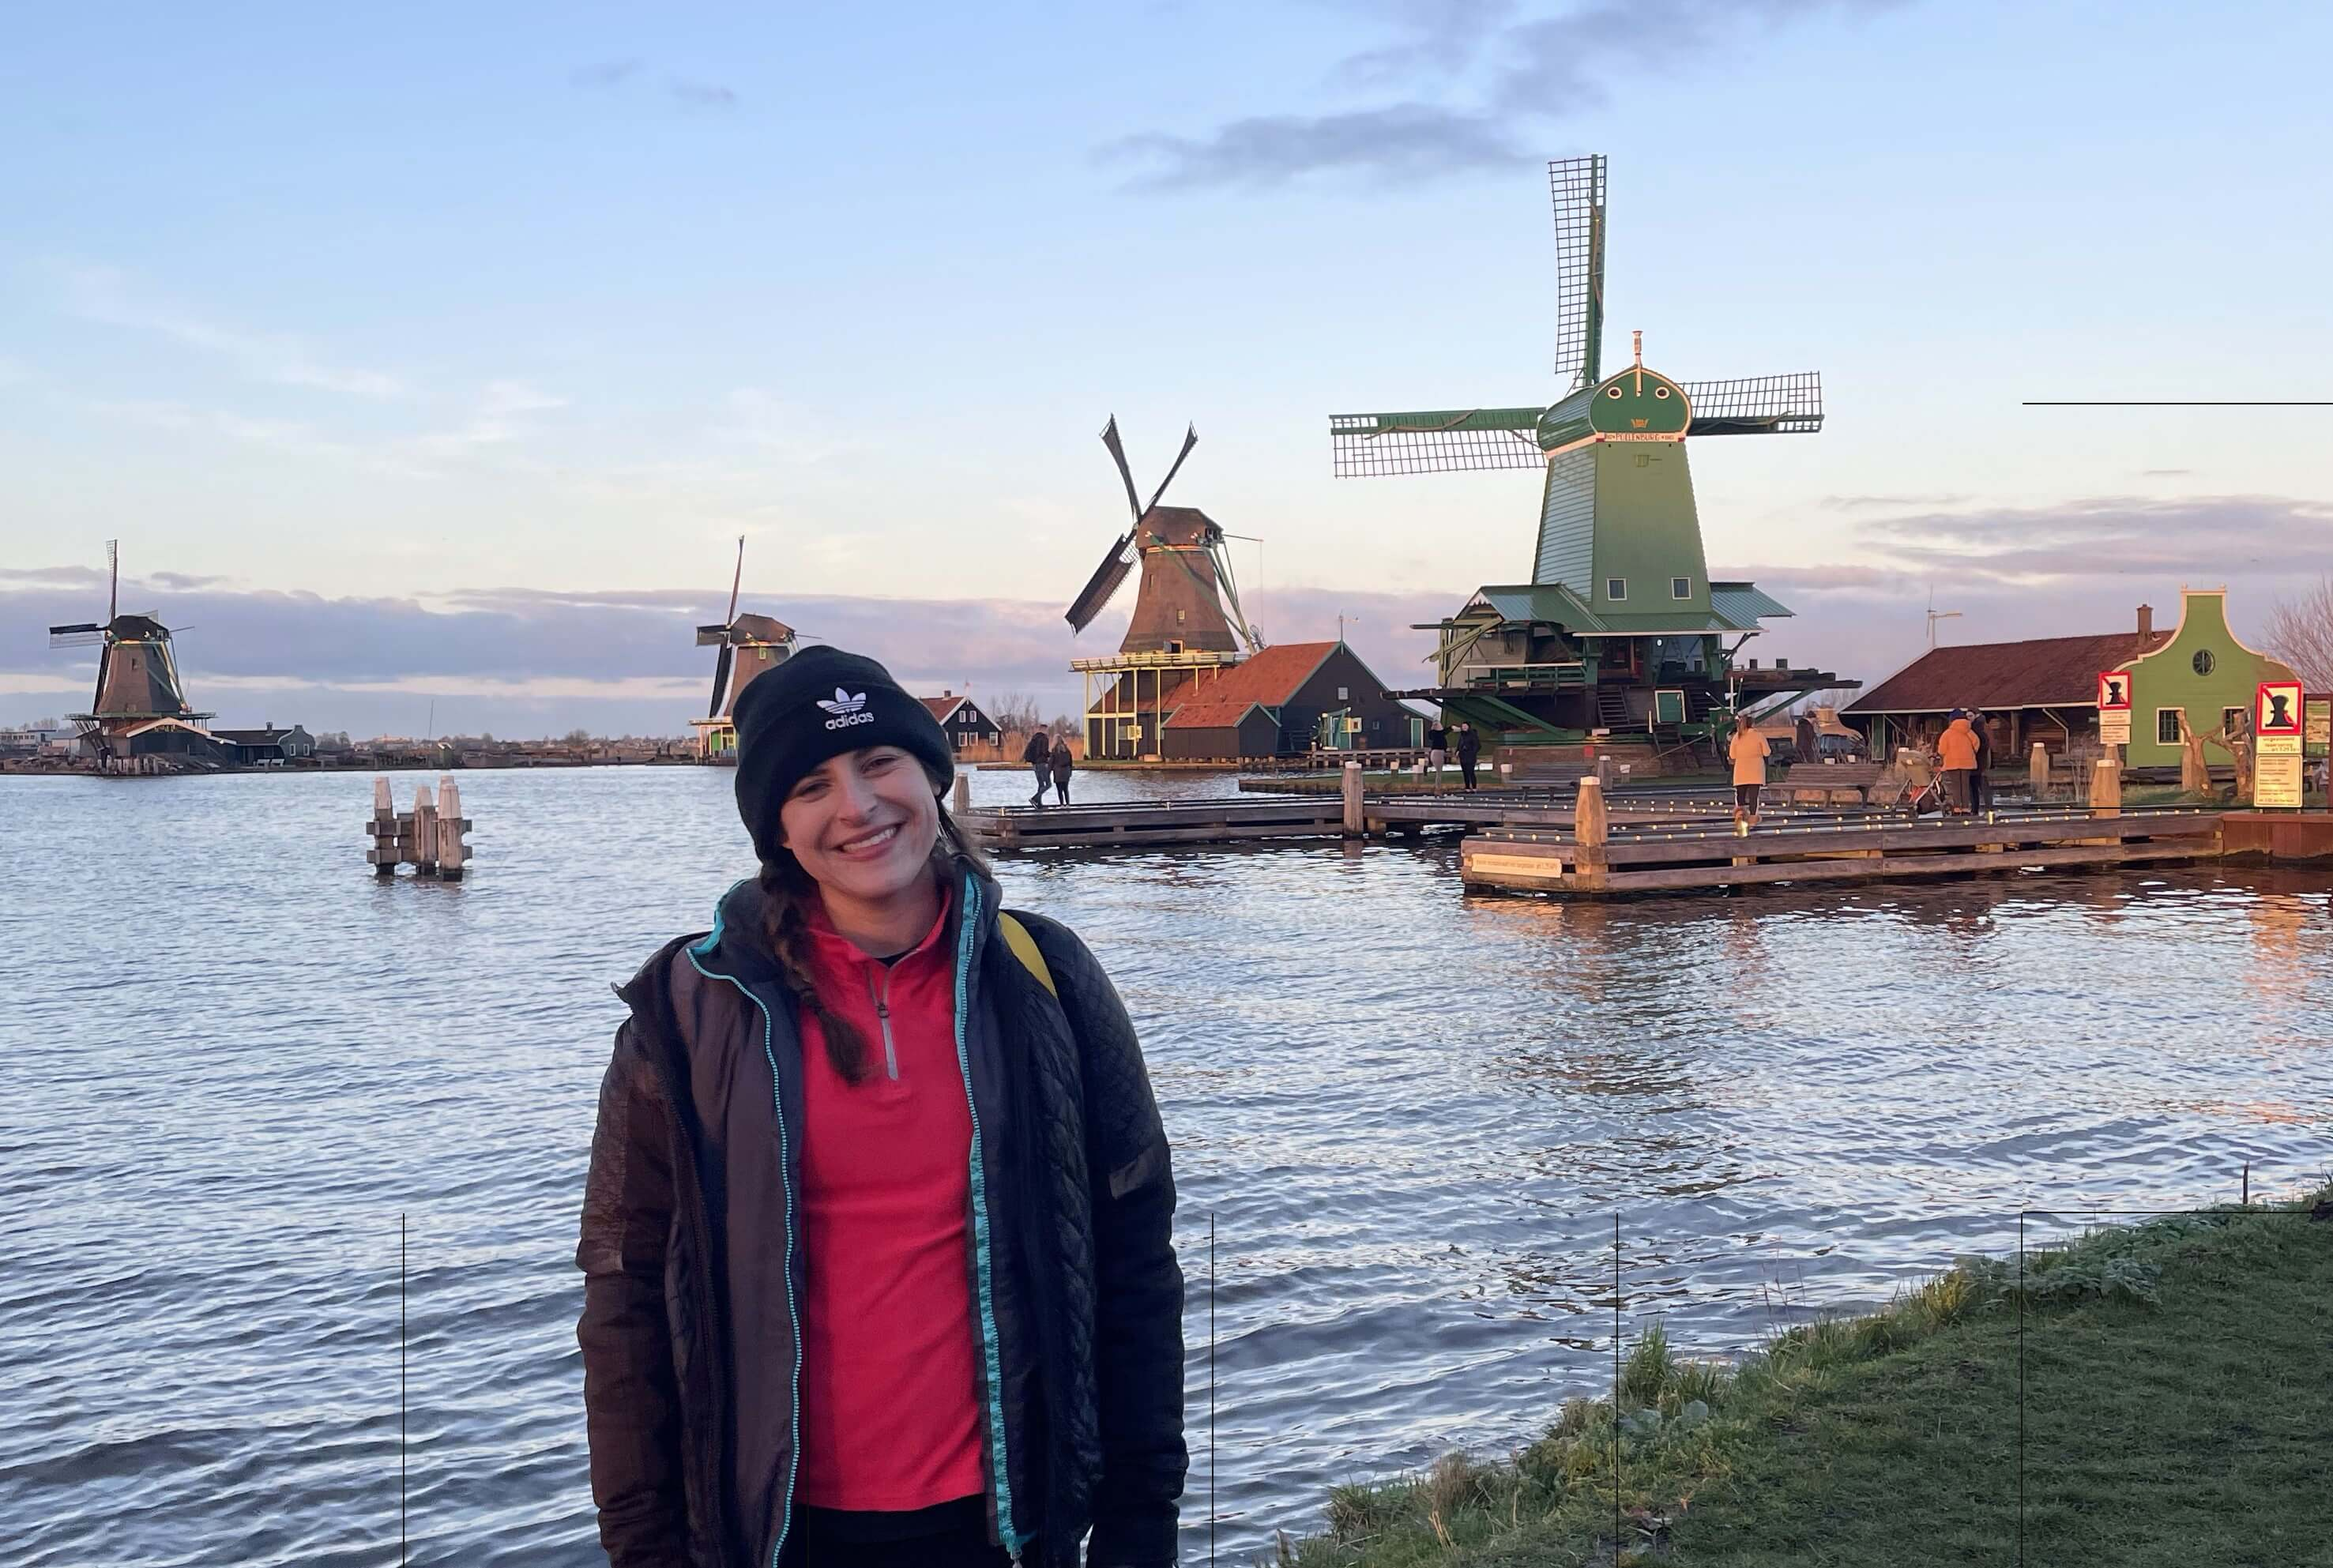 How to enjoy the real Amsterdam, according to an MBA student